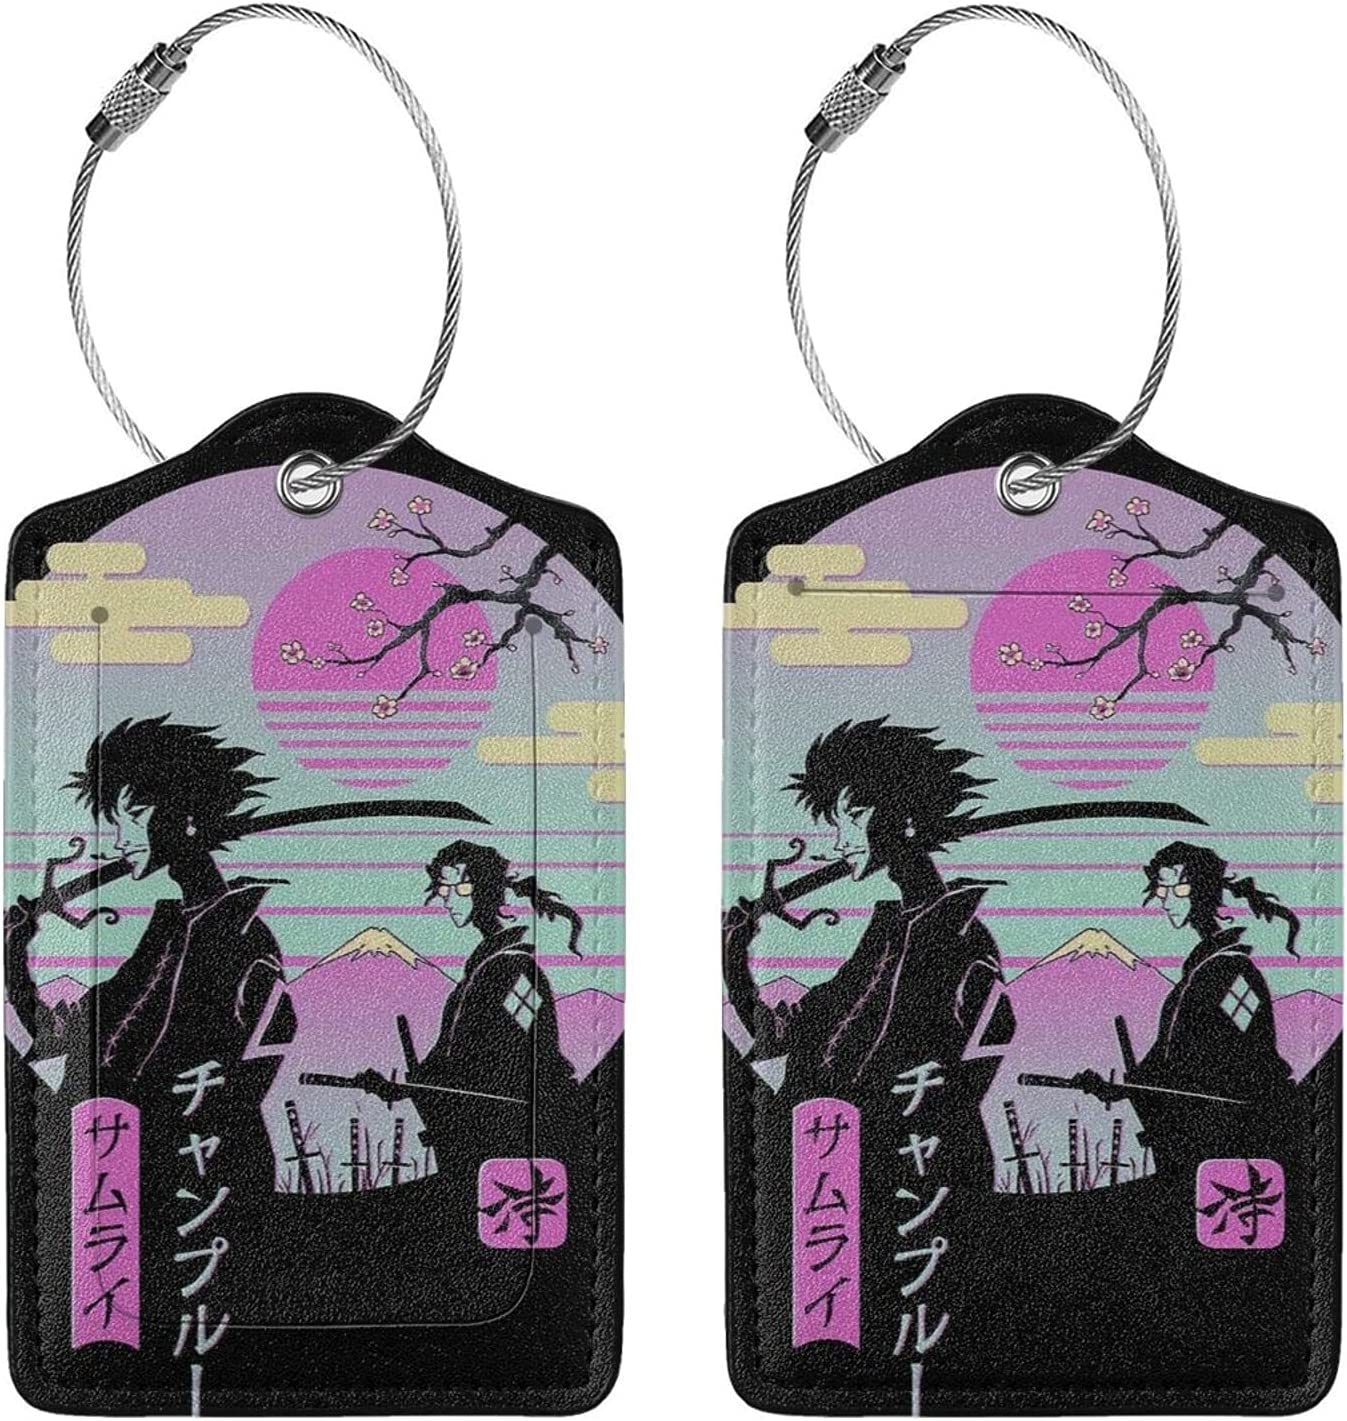 Samurai Champloo Anime Luggage Tag New Shipping Free Trave Max 53% OFF Carry-On Suitcase Cards